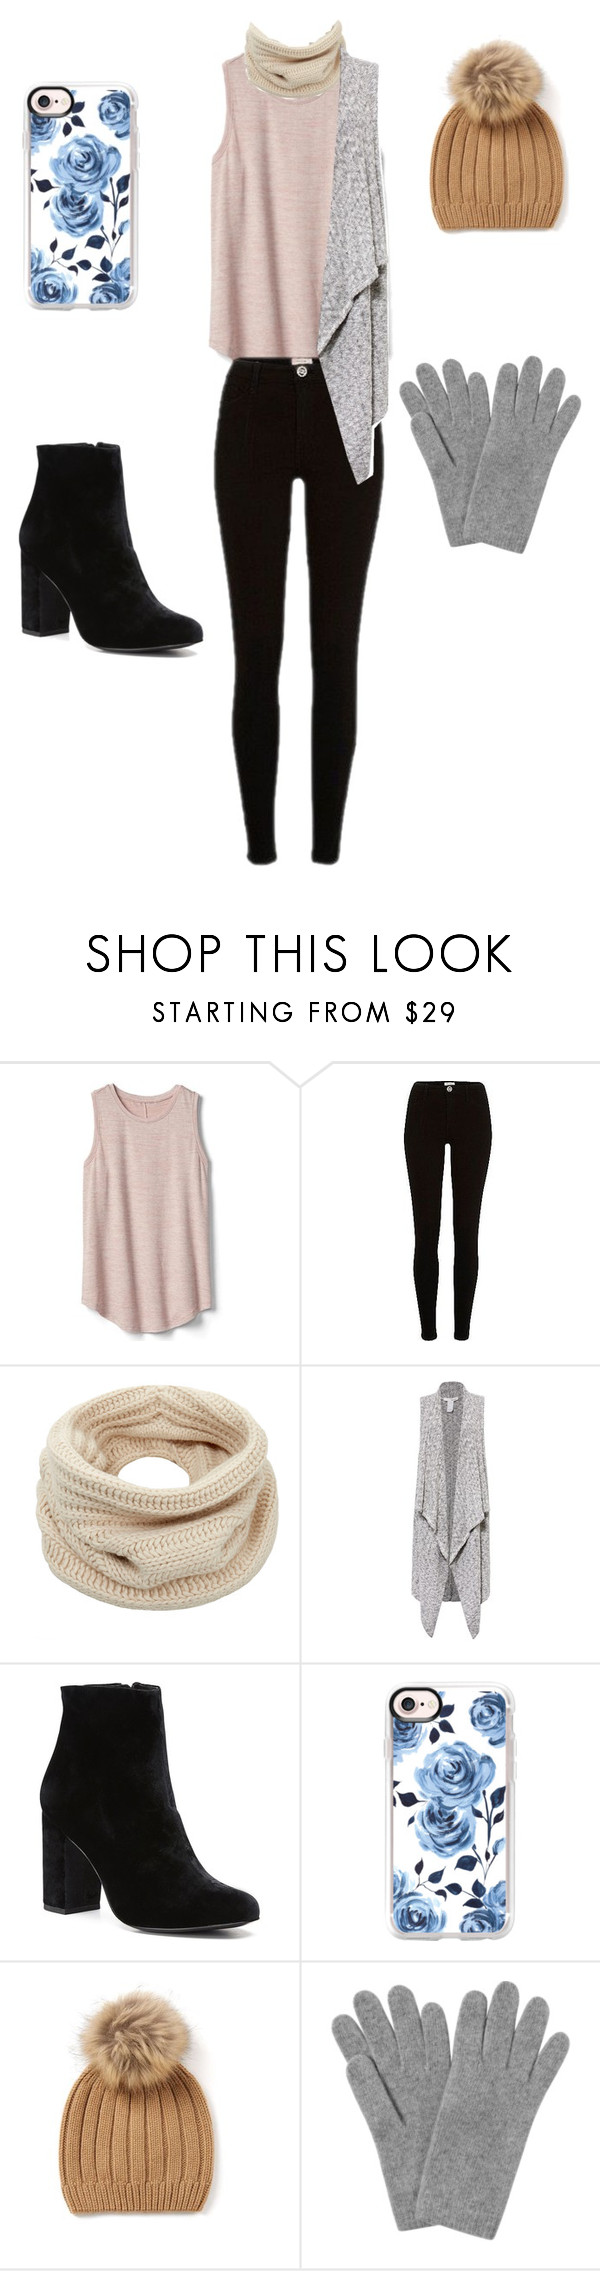 """""""The Klaczko"""" by cskittle on Polyvore featuring Gap, River Island, Helmut Lang, Sans Souci, Witchery, Casetify and L.K.Bennett"""